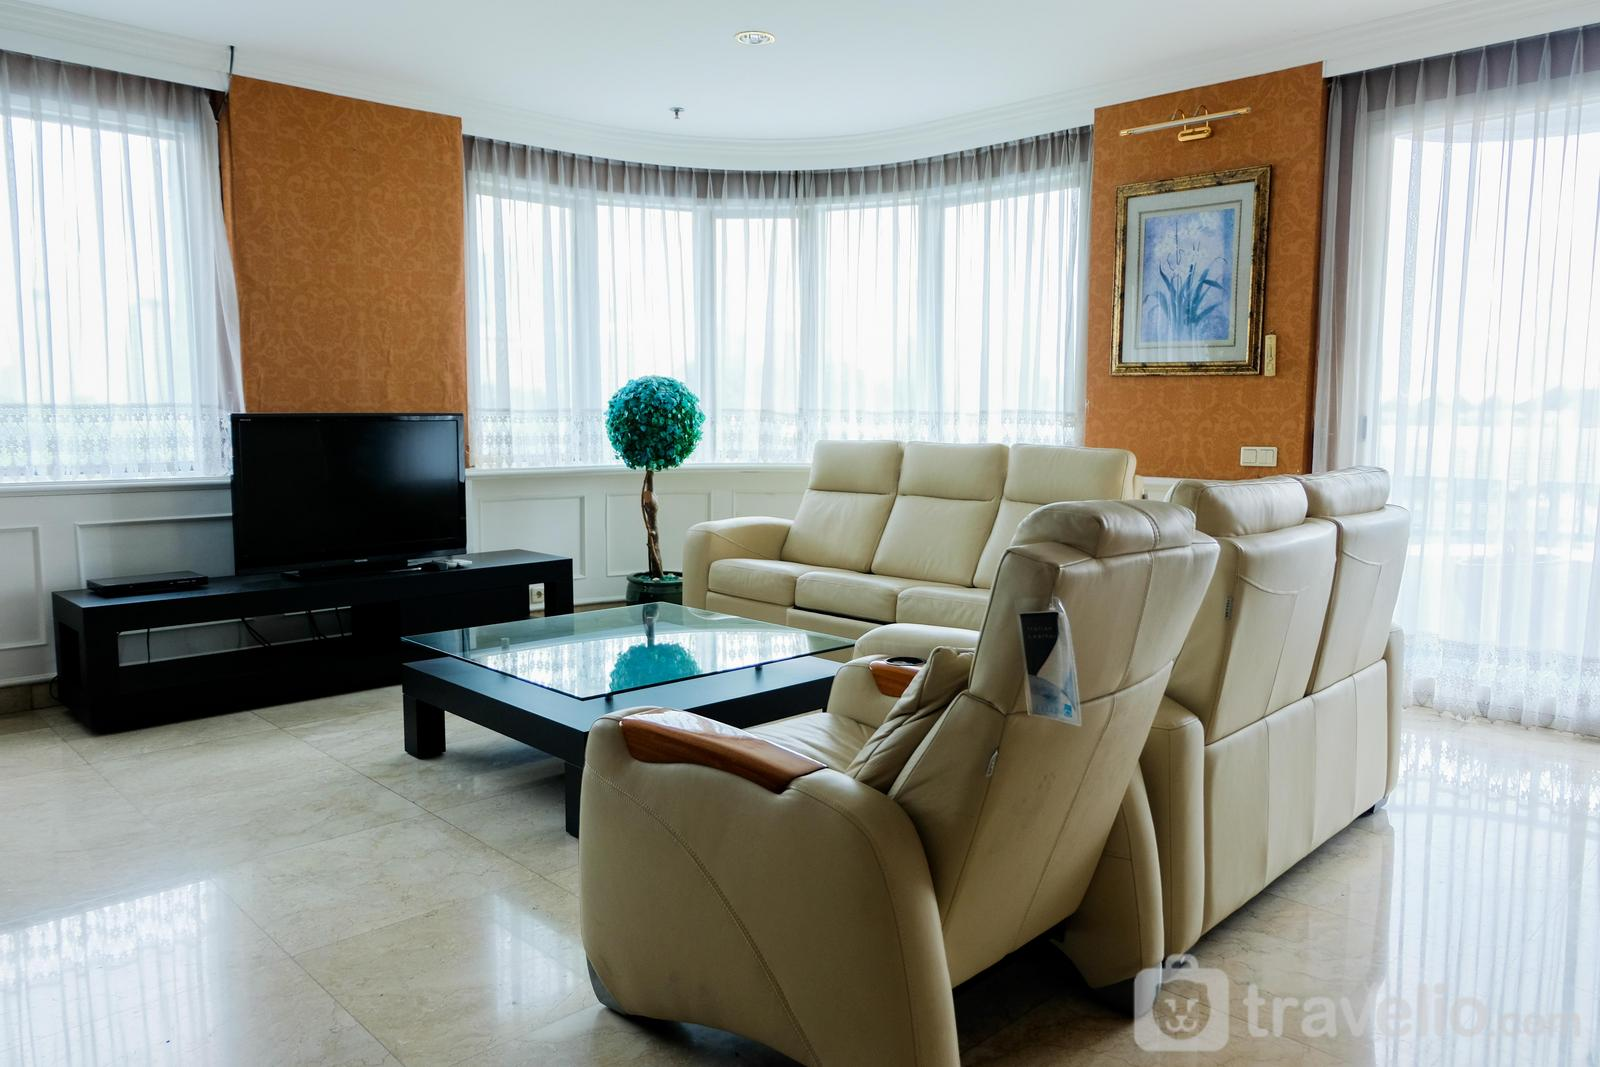 Park Royale Apartment Gatot Subroto - Spacious 2BR Park Royale Apartment By Travelio